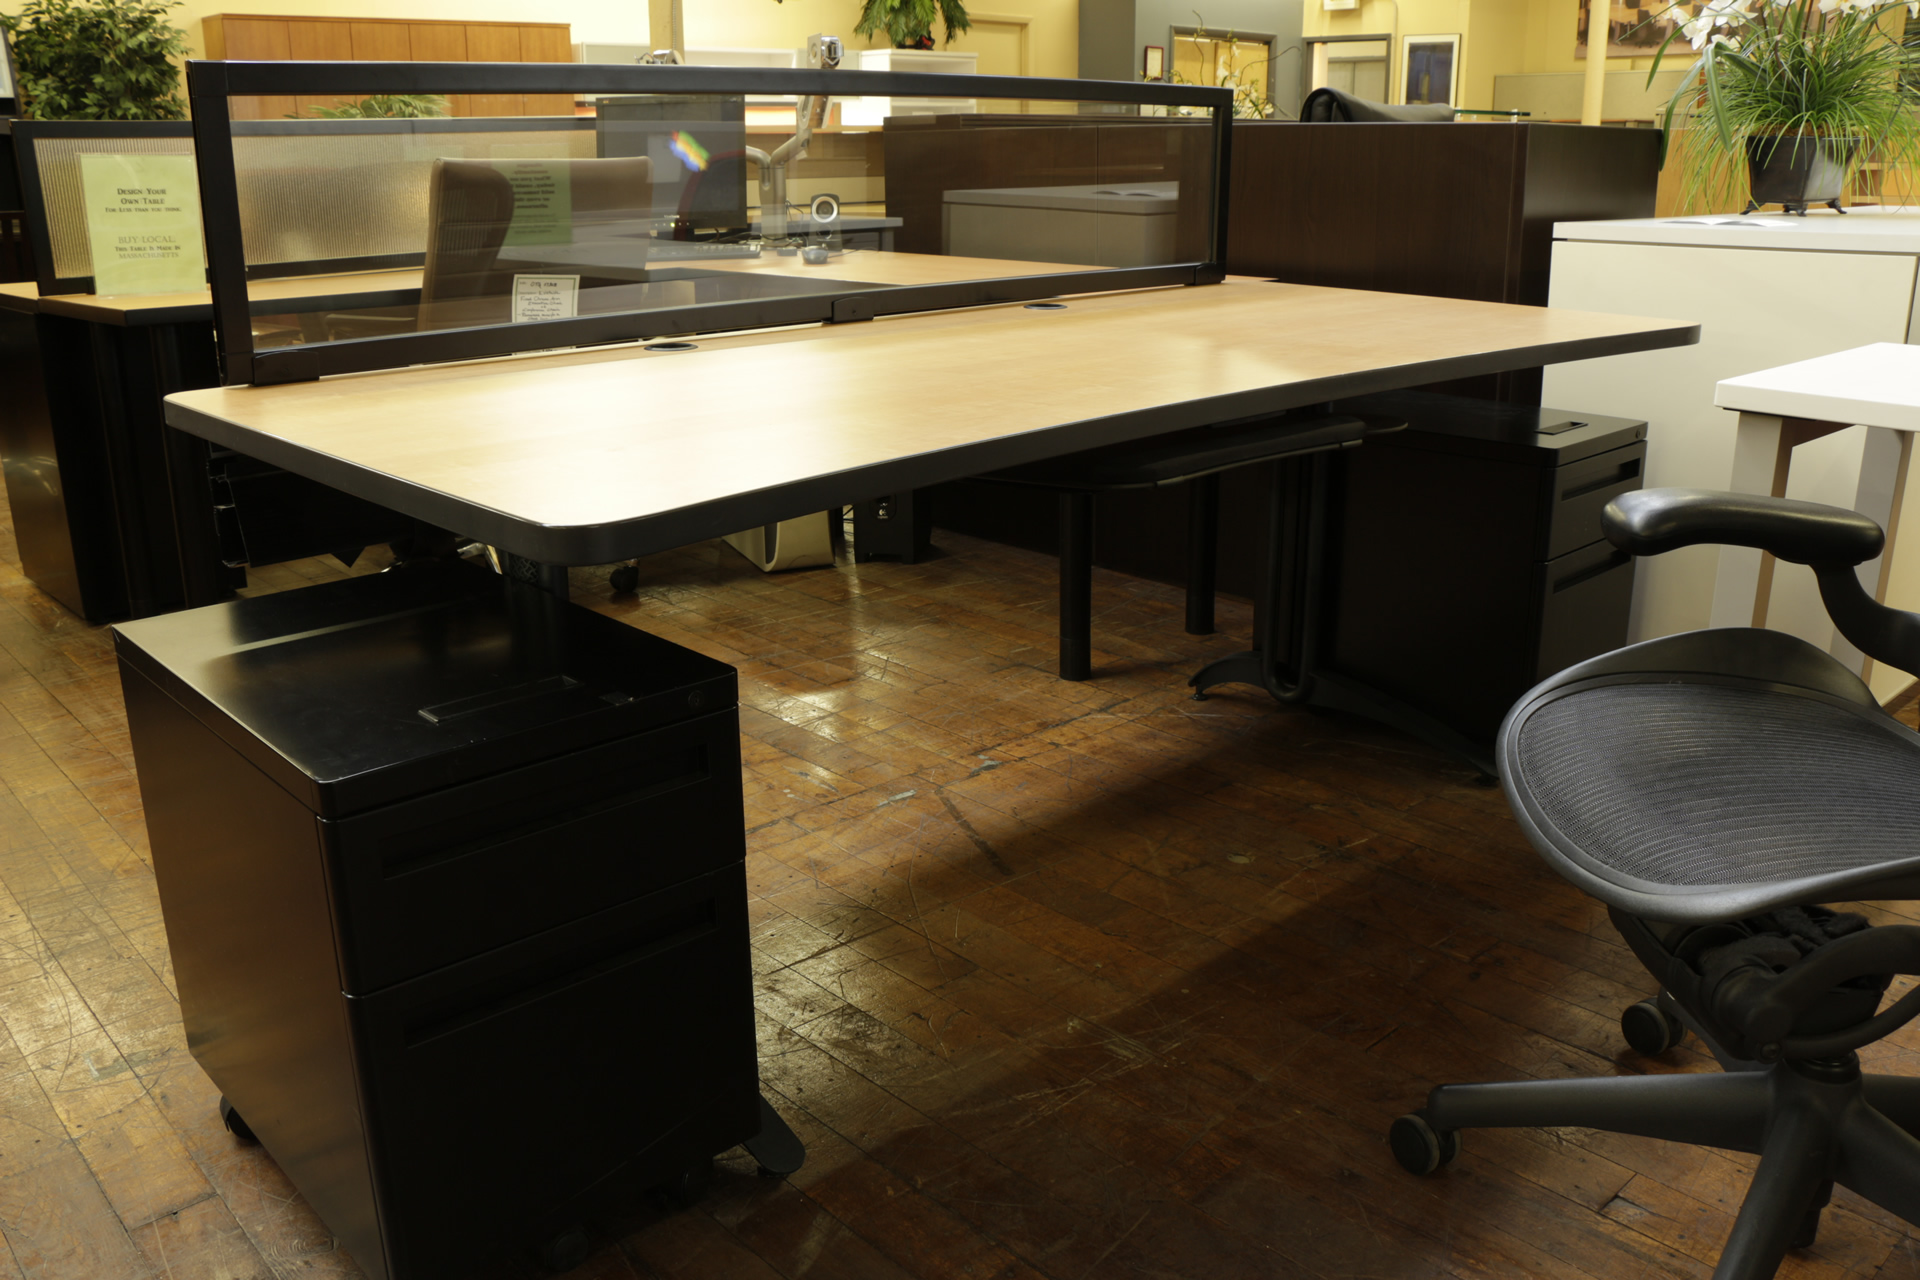 peartreeofficefurniture_peartreeofficefurniture_mg_1854.jpg